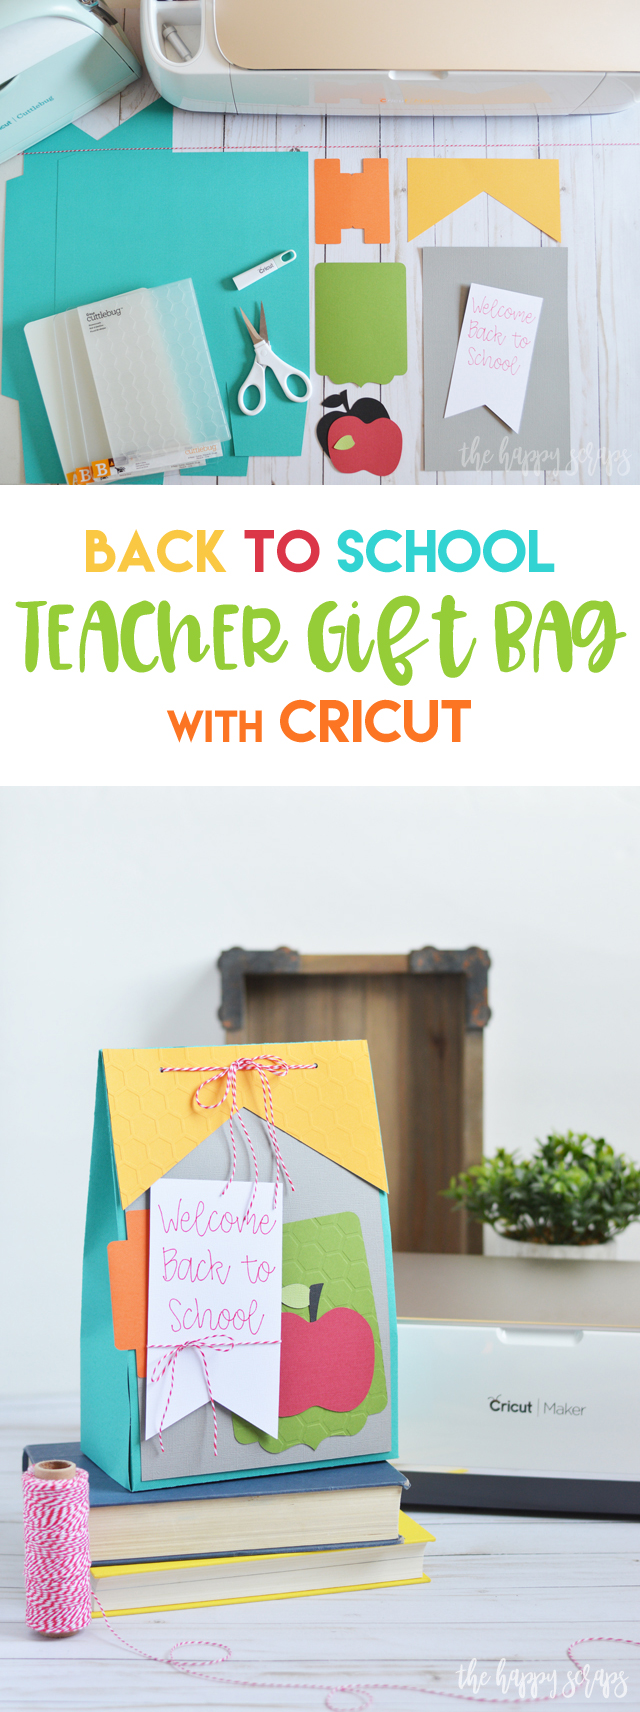 Any teacher would love to receive this Back to School Teacher Gift Bag made with the Cricut! Fill it up with some supplies or their favorite treats!